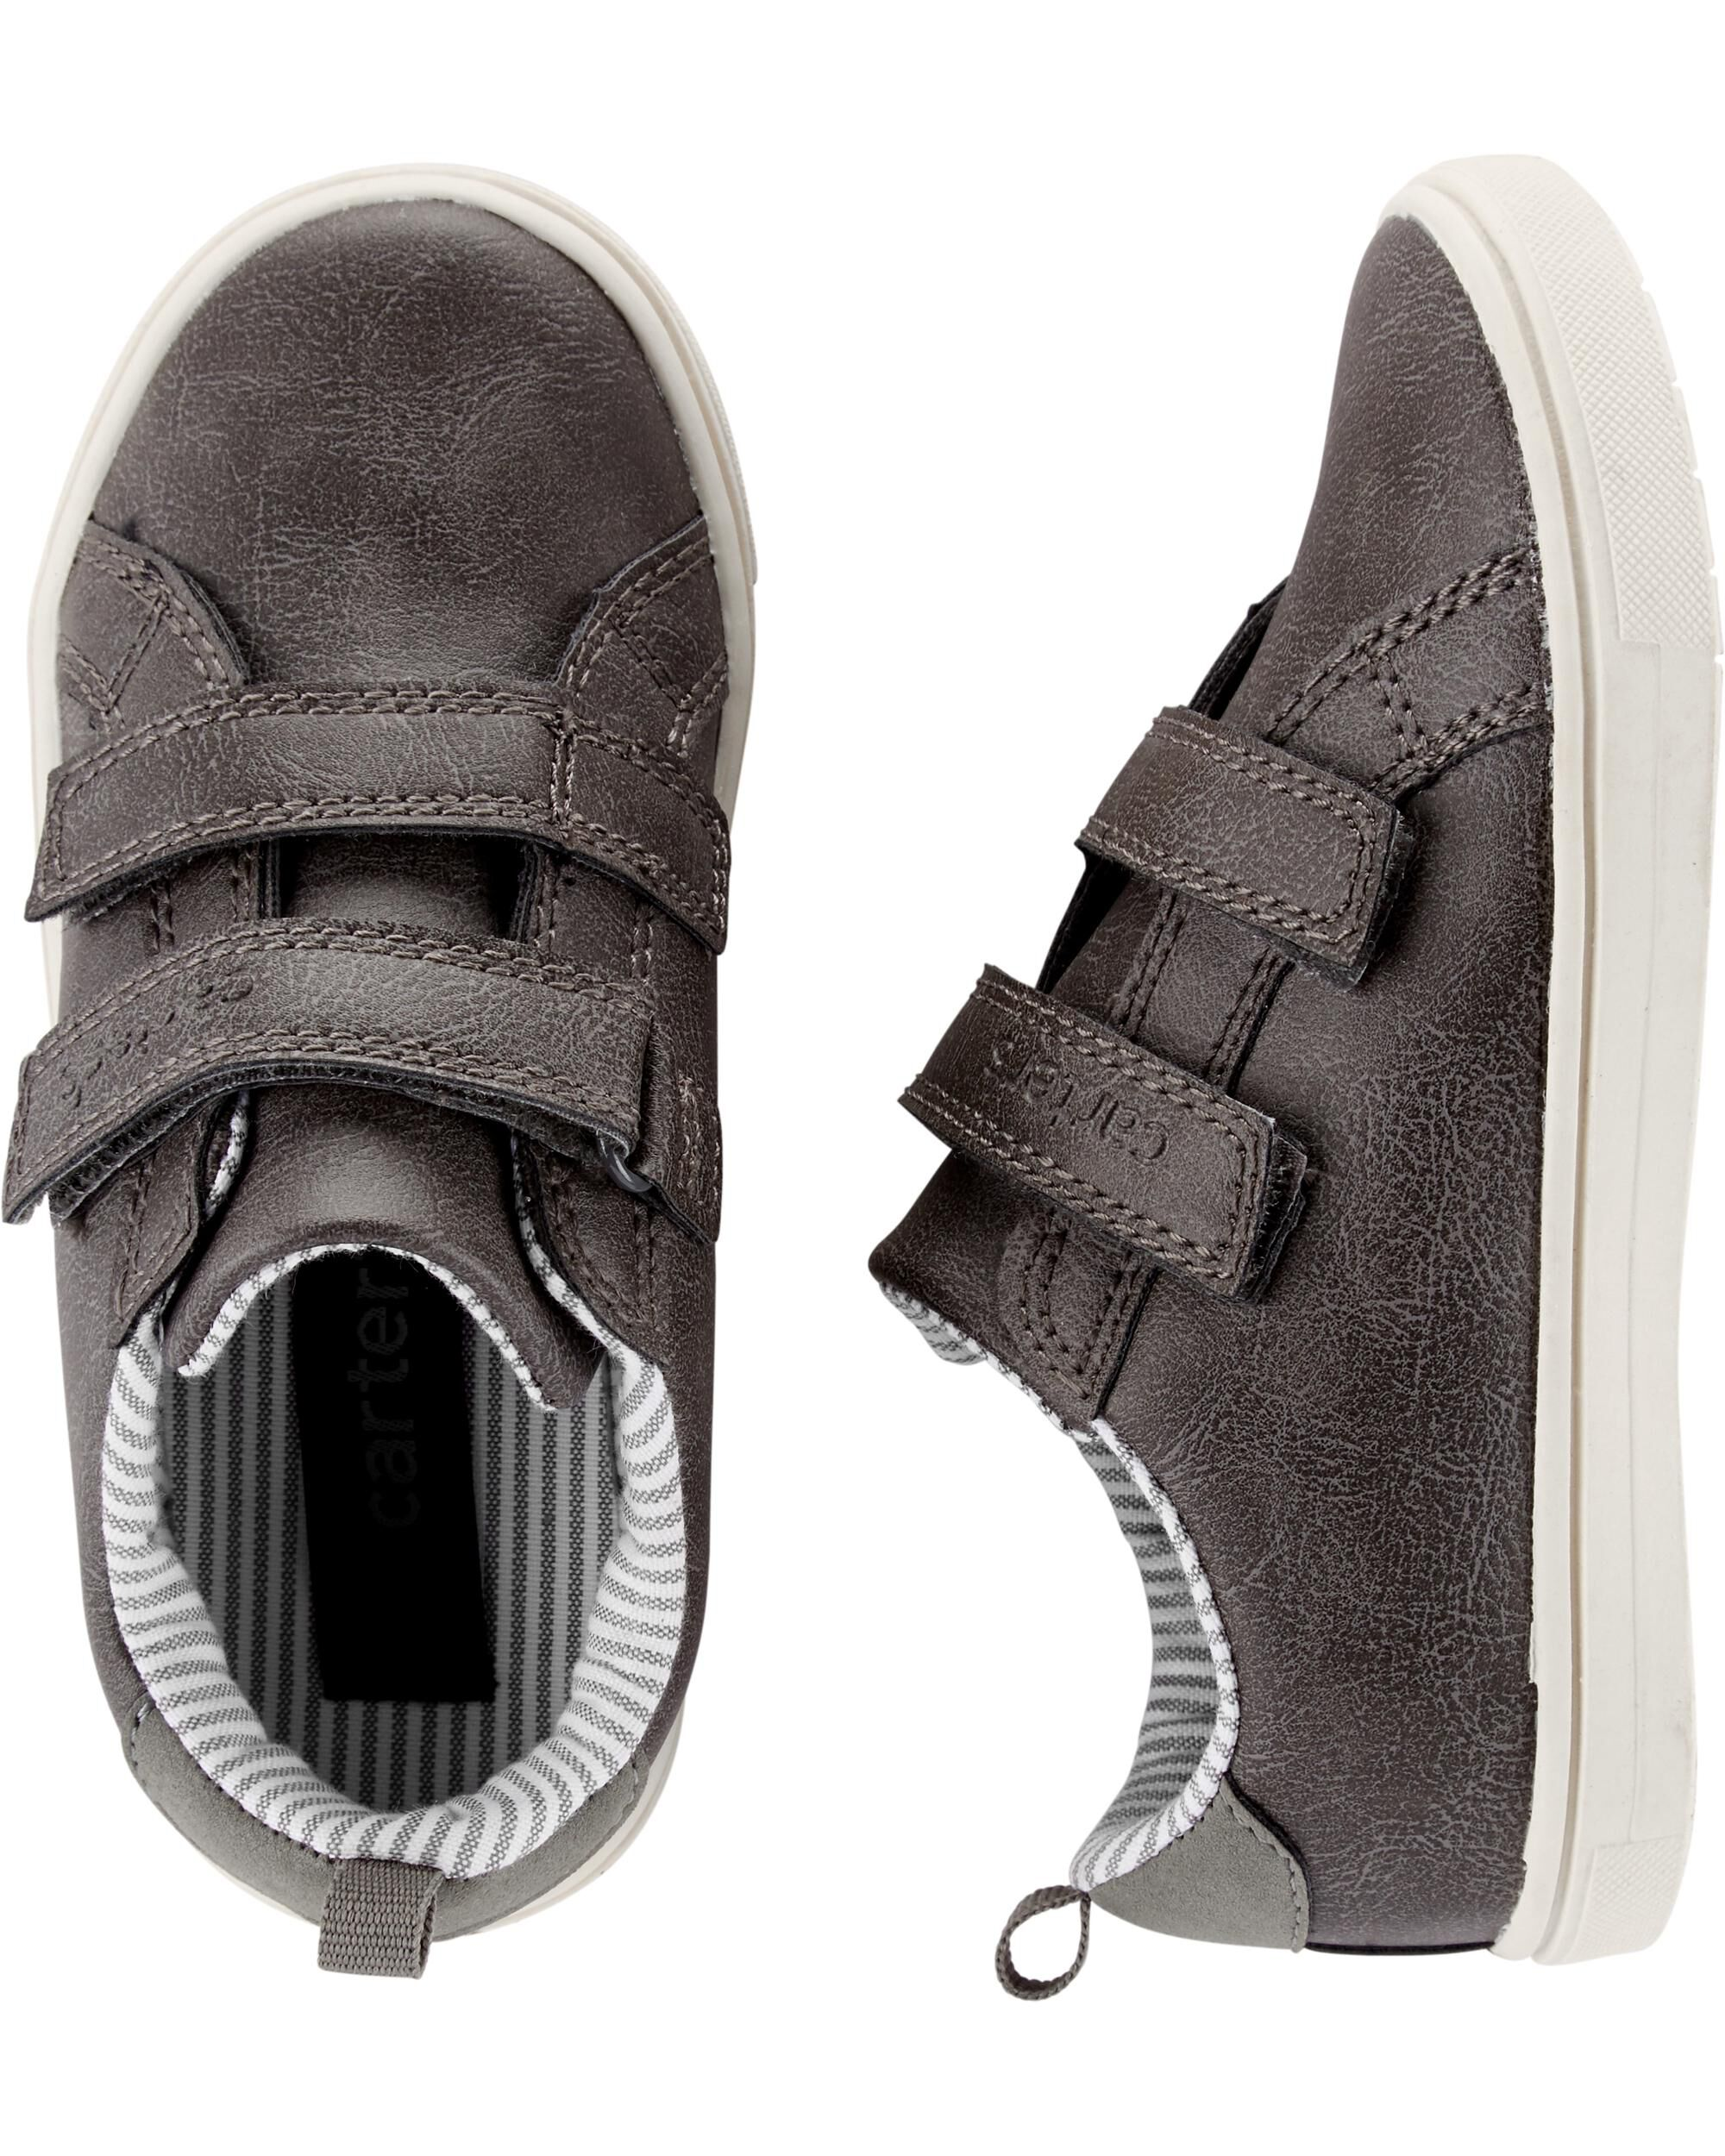 Size 6 Toddler Boys Shoes